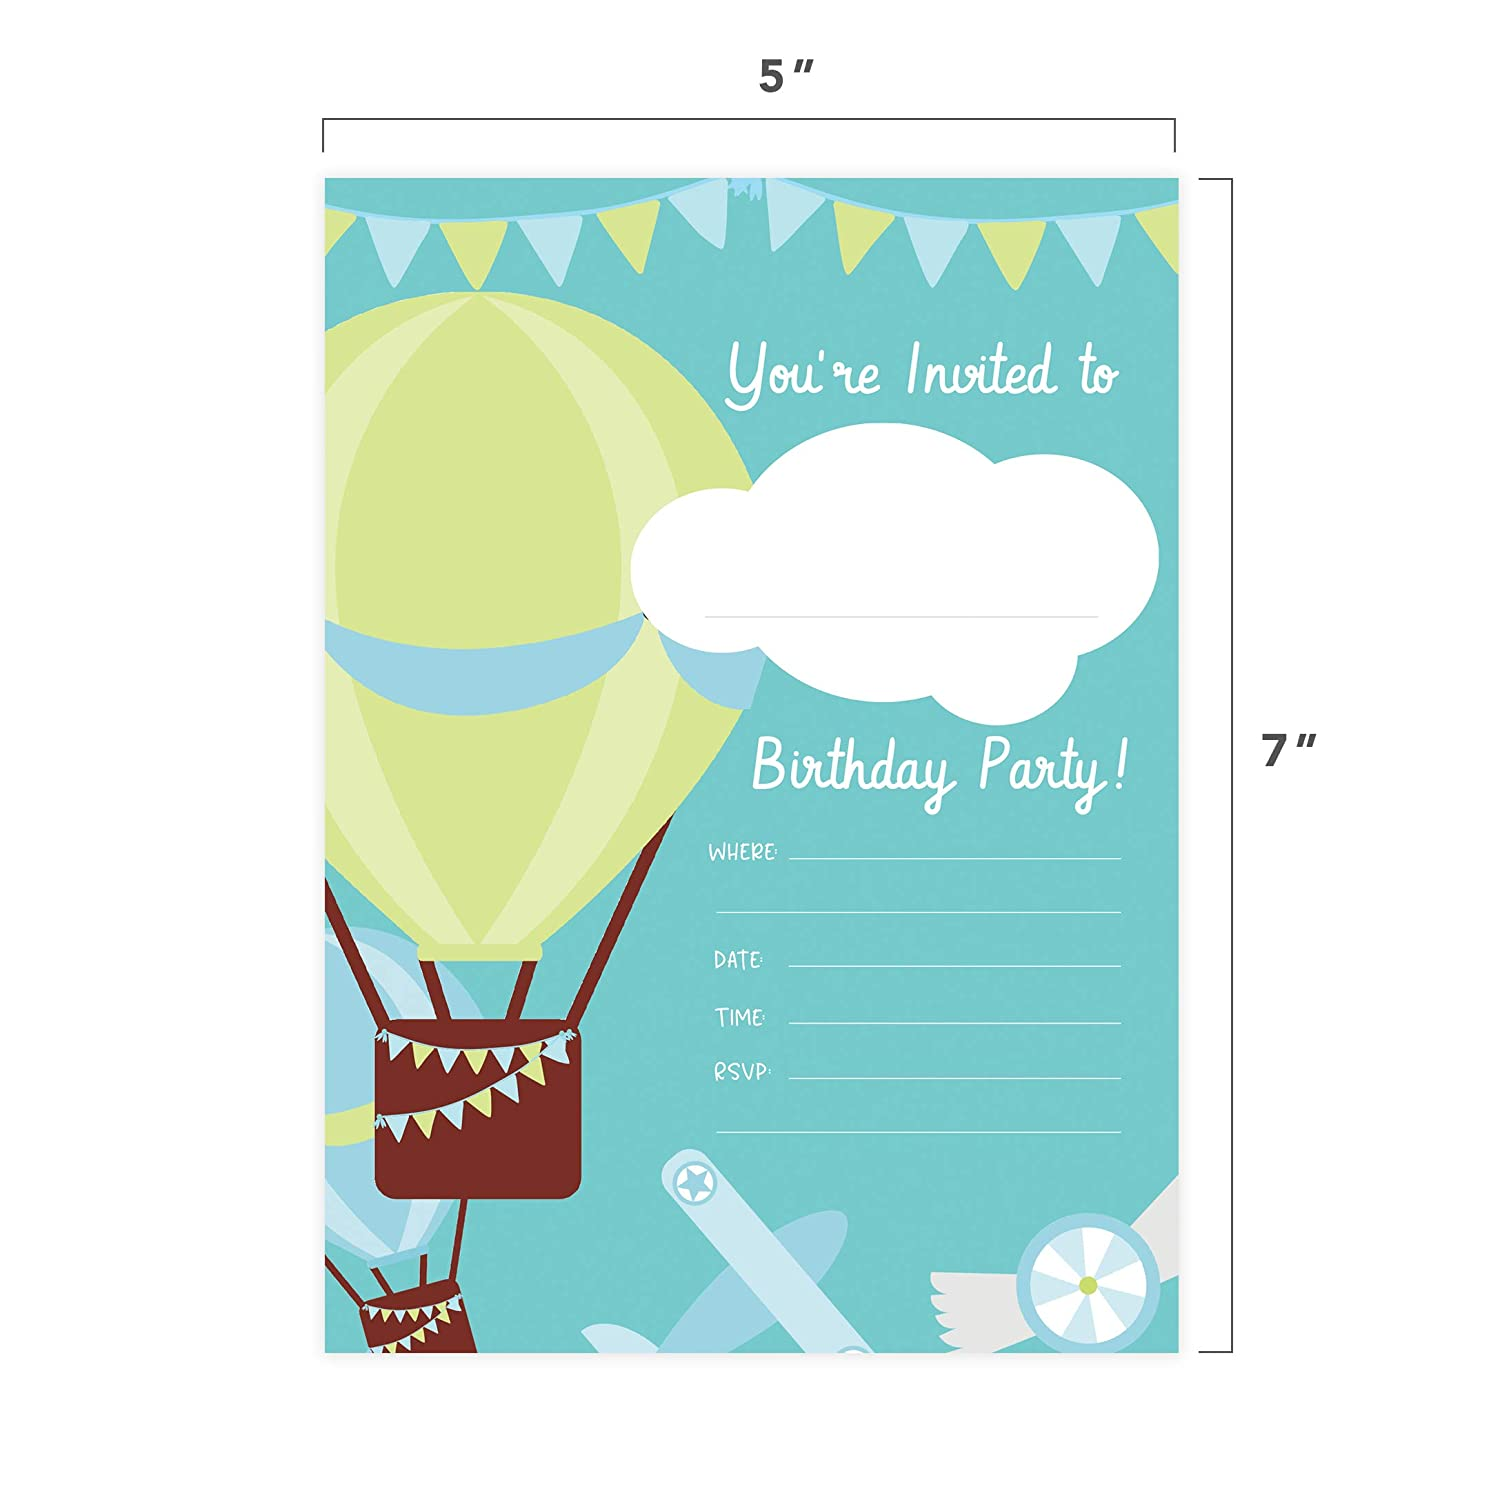 Balloons 25 Invitations /& 25 Thank You Card Combo Pack Happy Birthday Invite Cards With Envelopes /& Seal Stickers Boys Girls Kids Party Desert Cactus